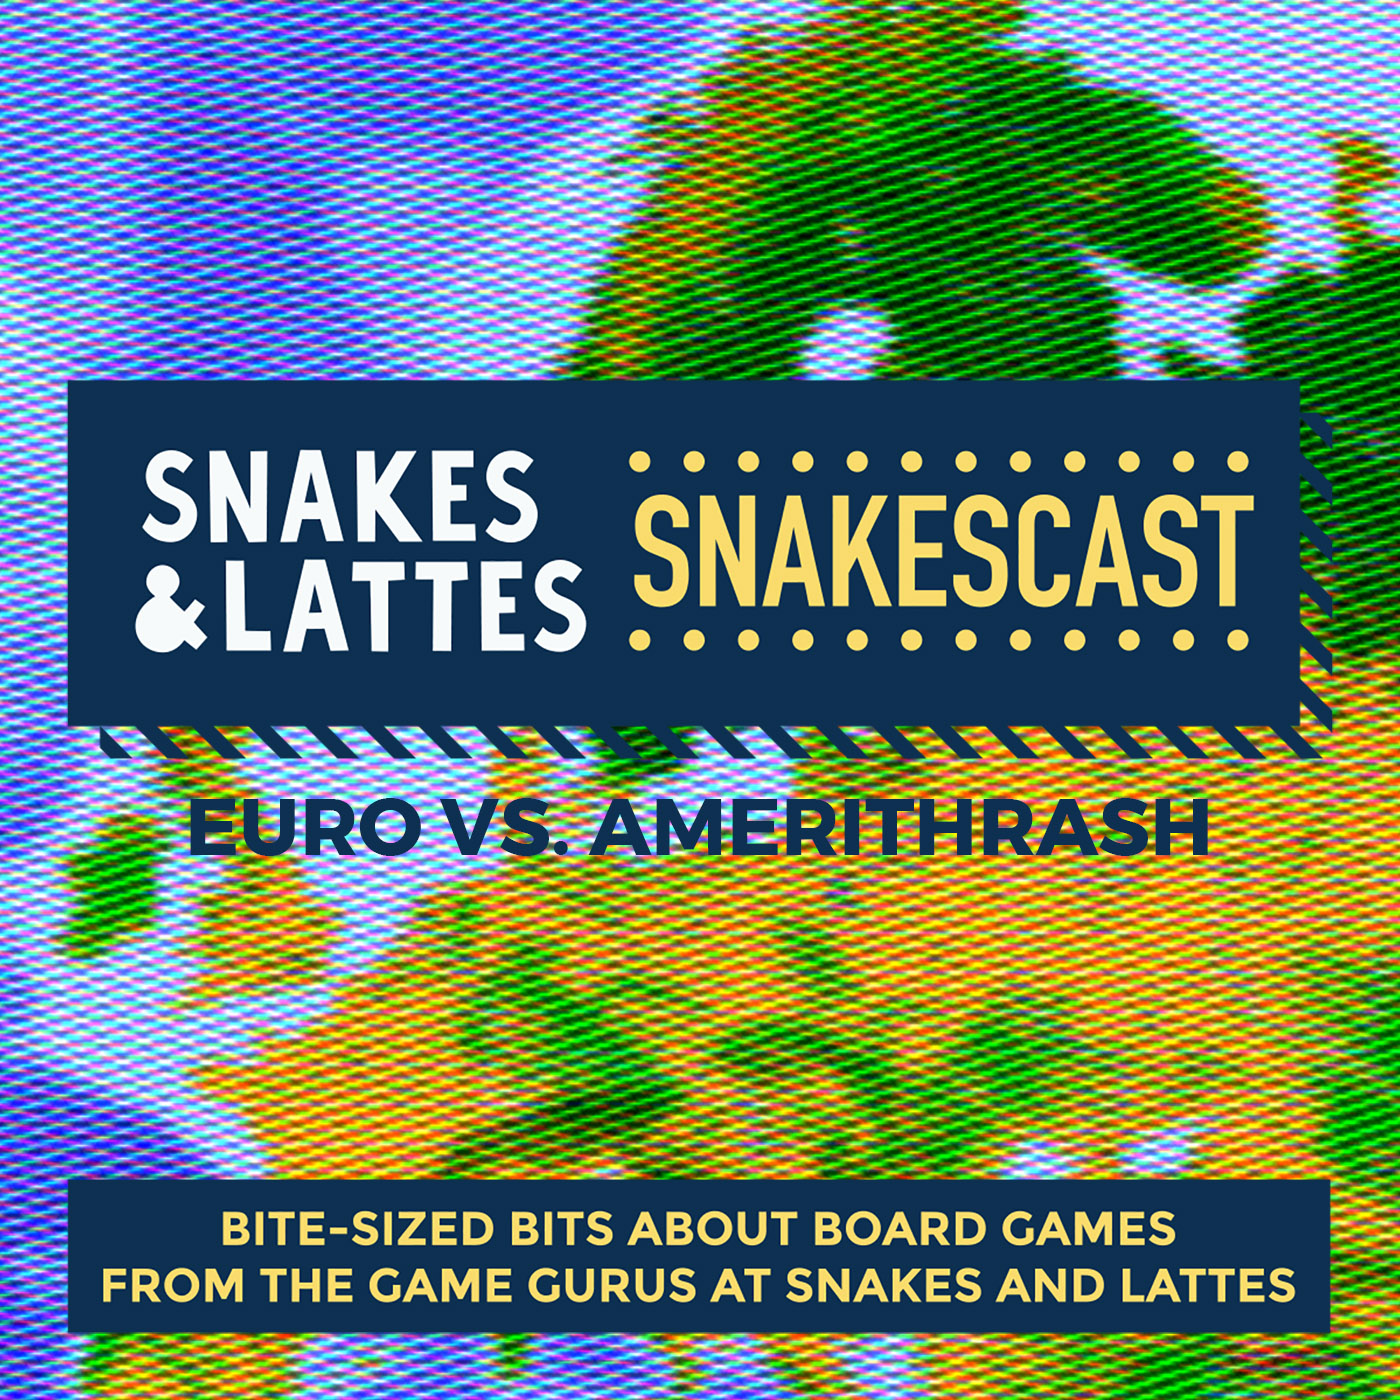 Euro vs. Amerithrash, Part 1 - What is a Euro game?